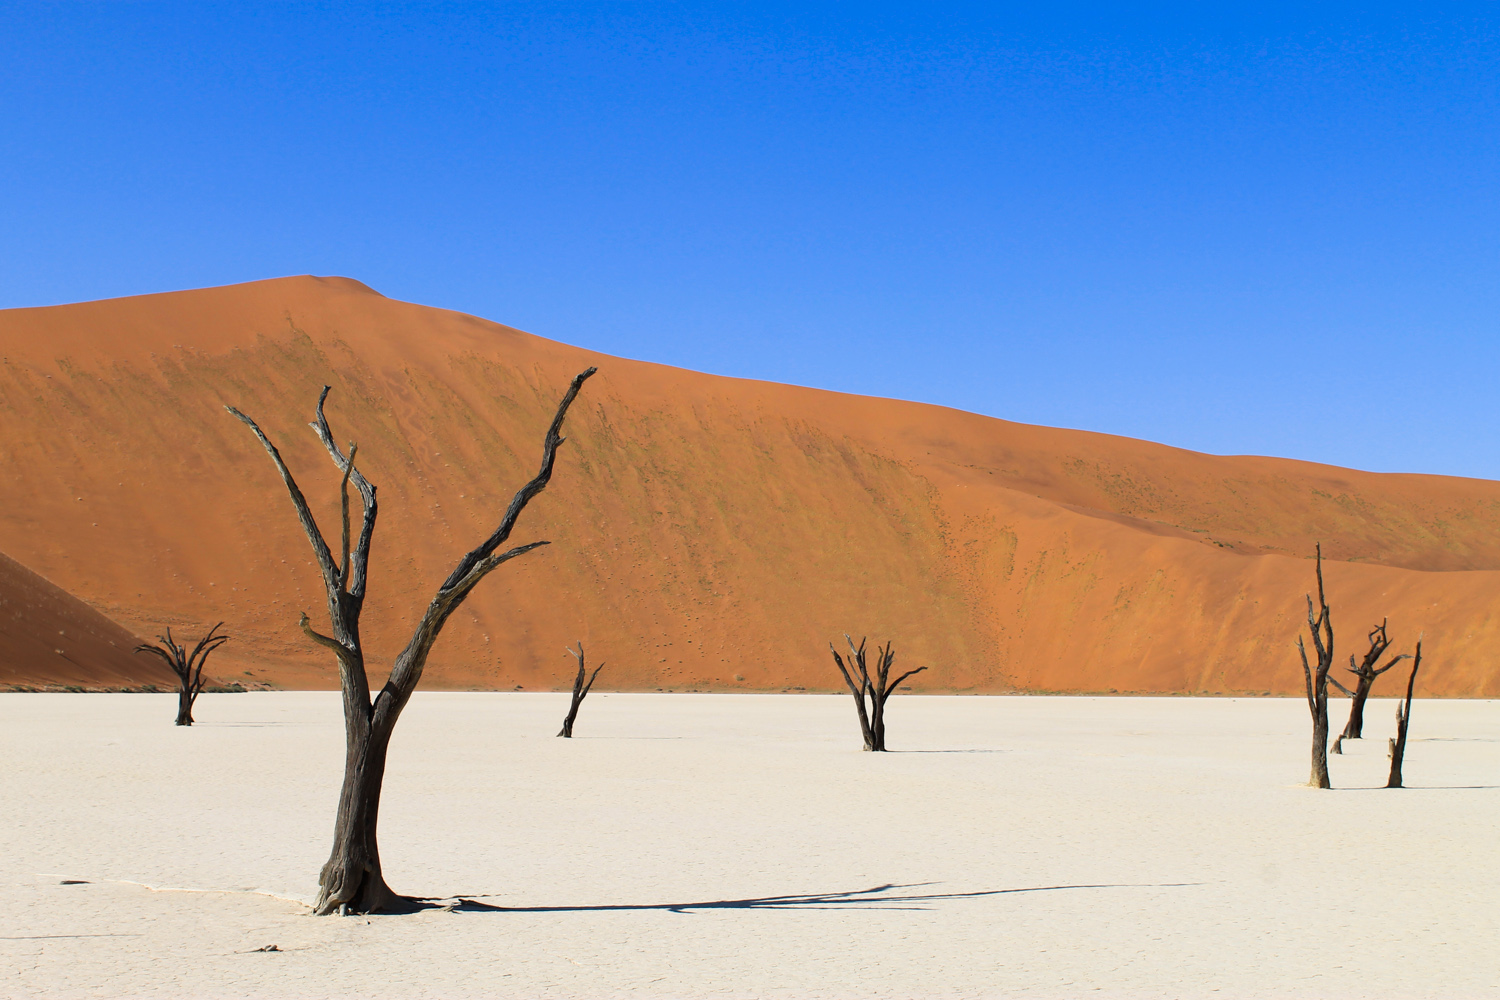 Dead acacia tress in the white clay pan at Deadvlei in Namibia.